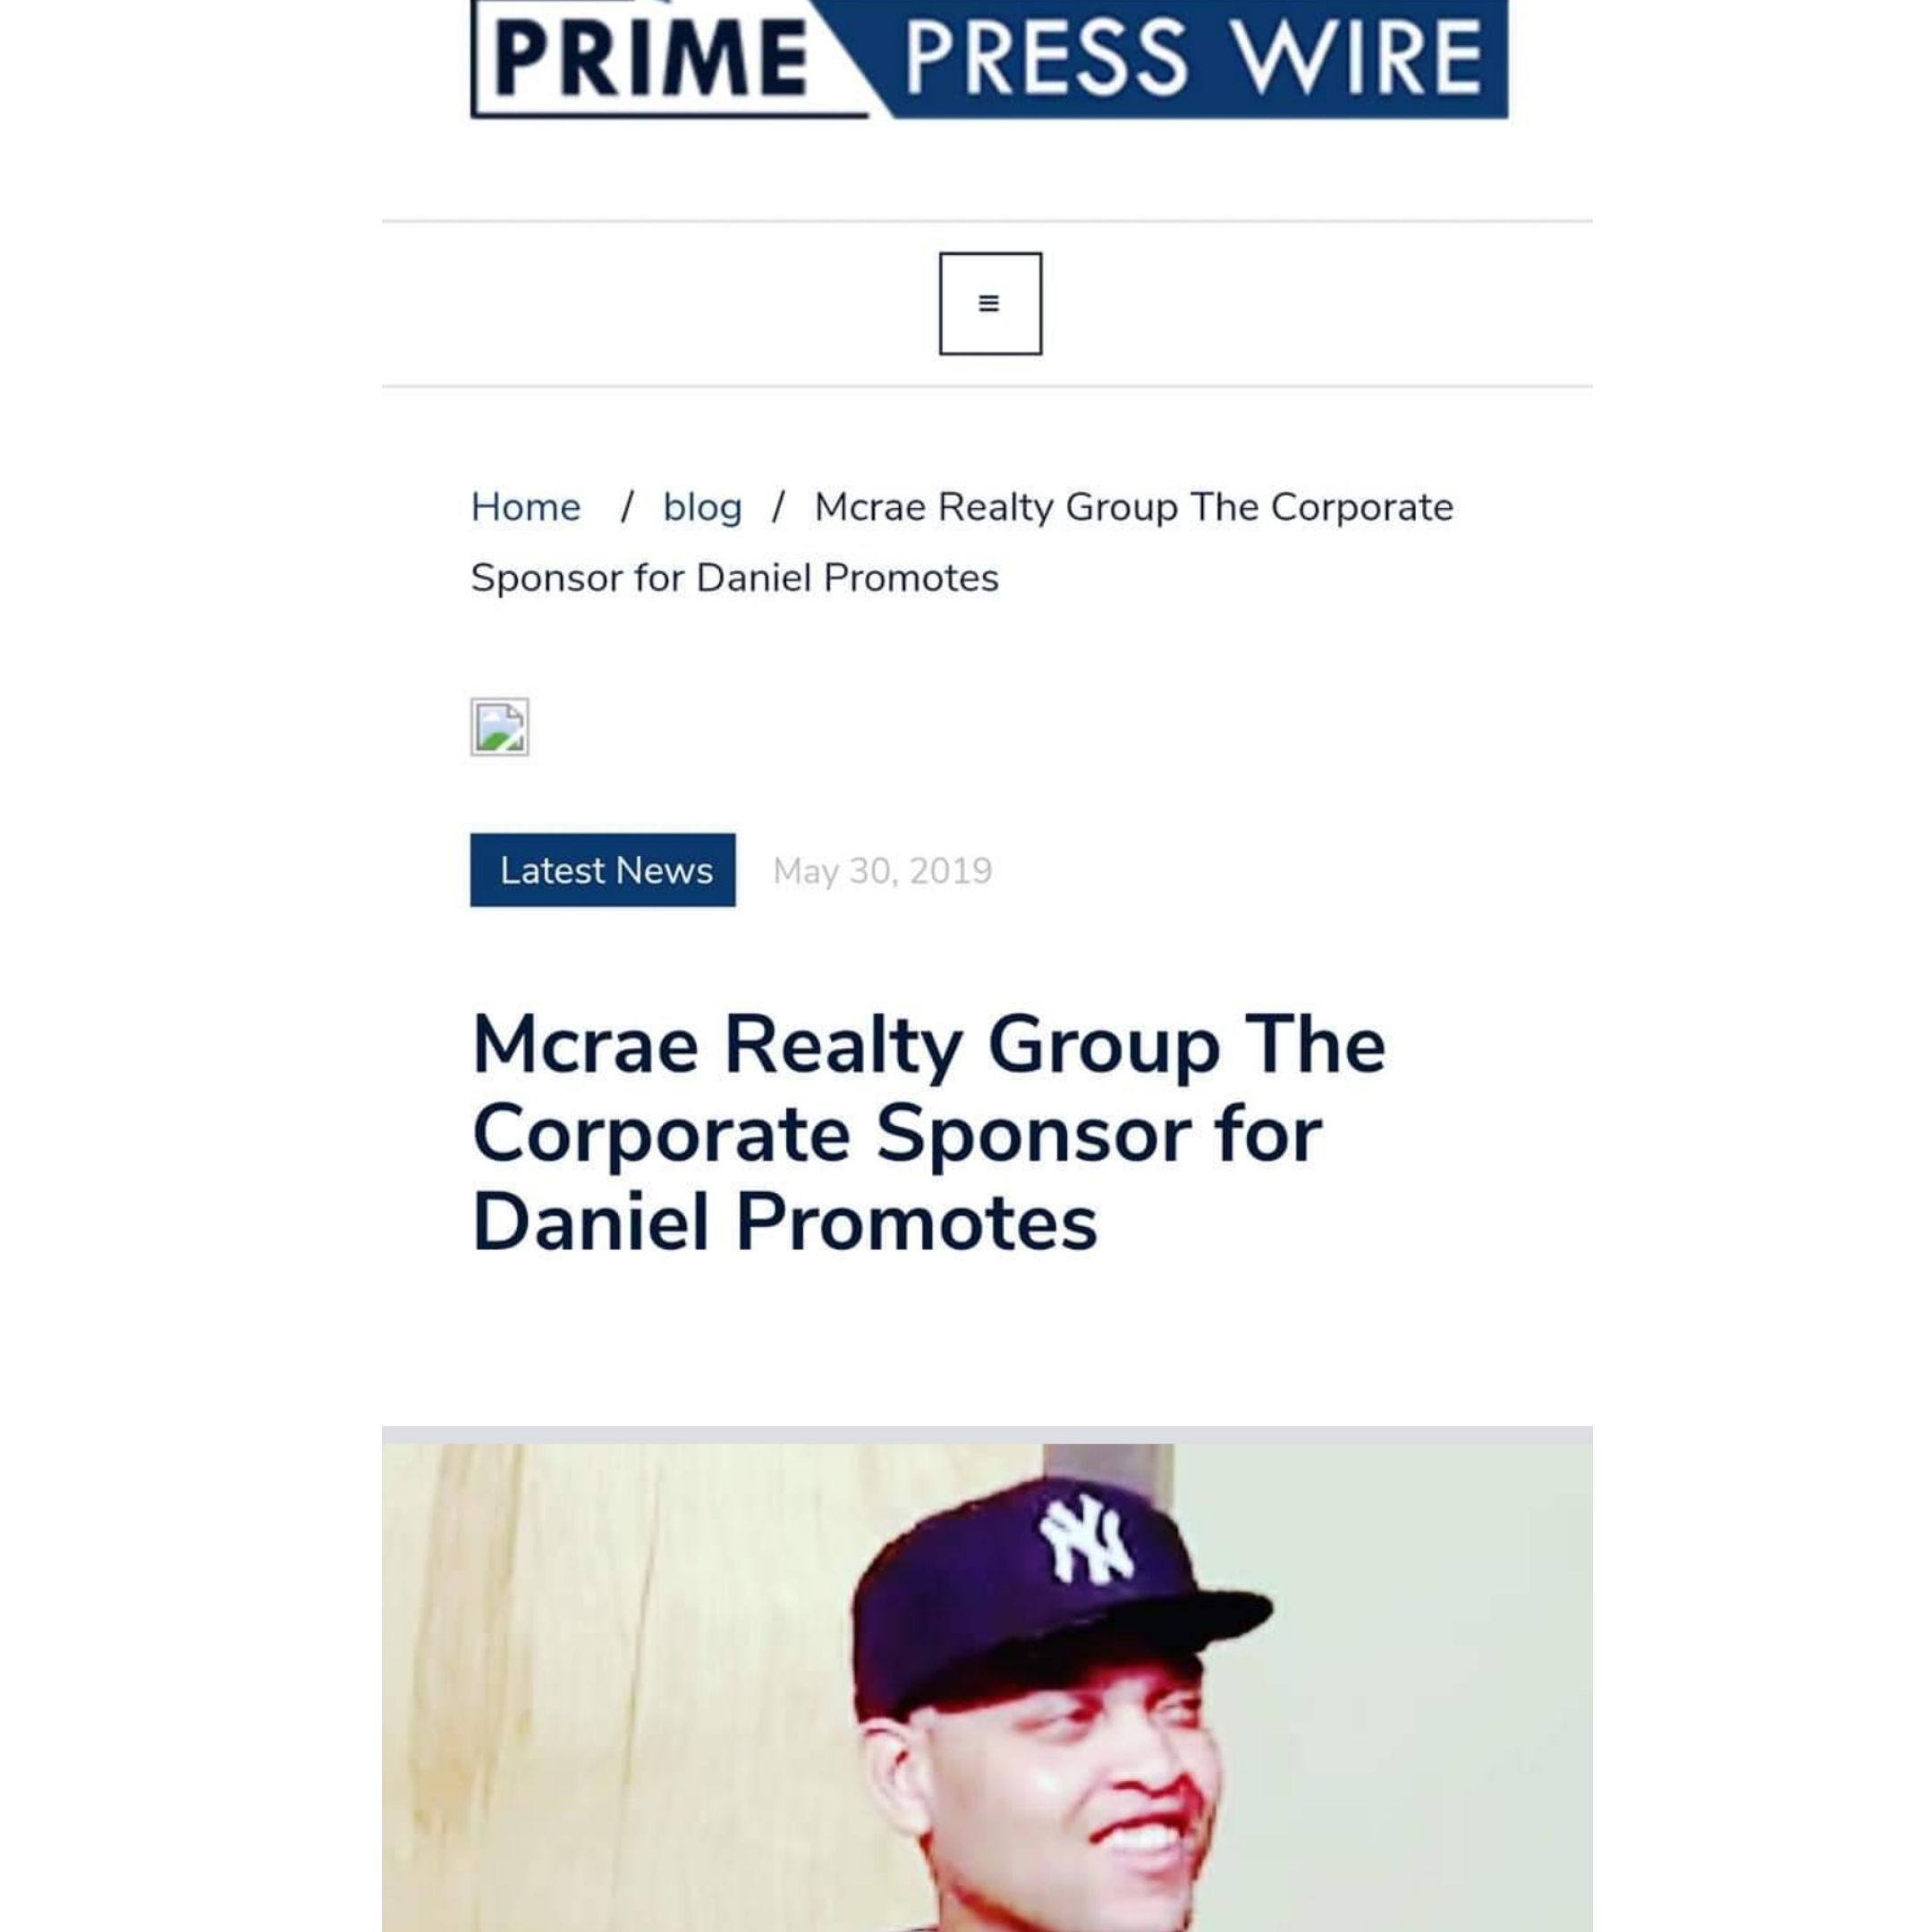 Daniel Borges has press about him for his real estate and promotion work